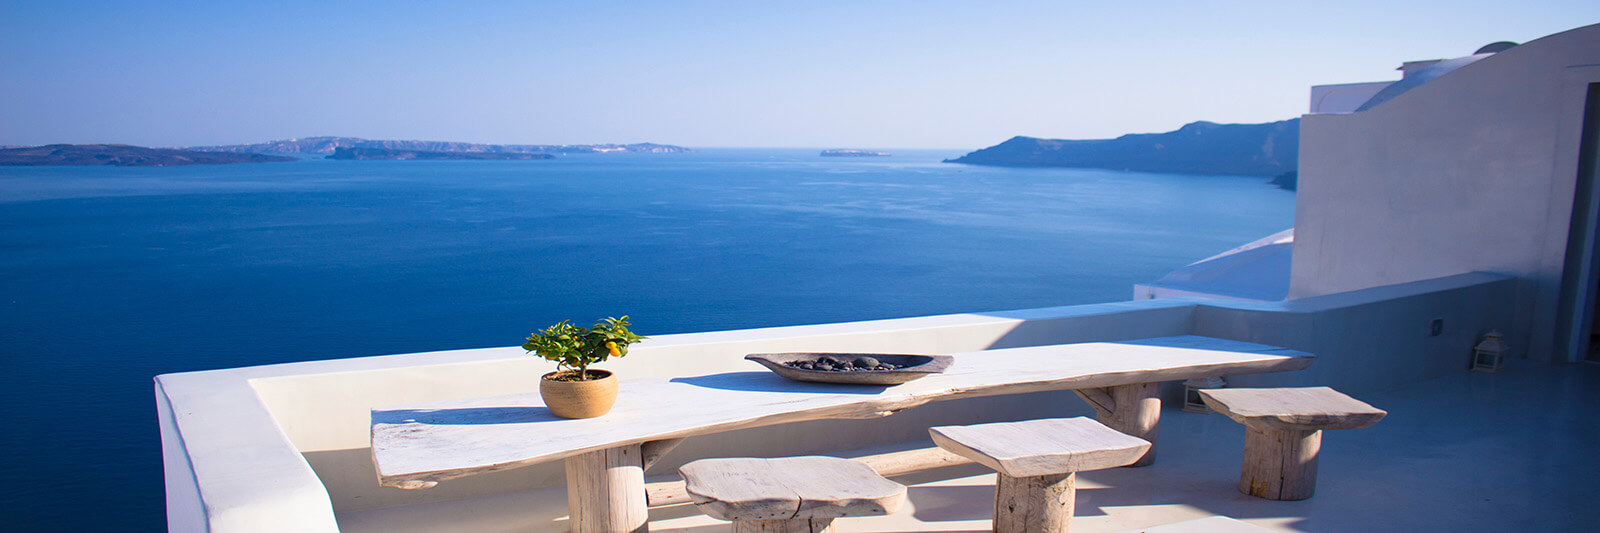 Breathtaking view in Oia, Greece